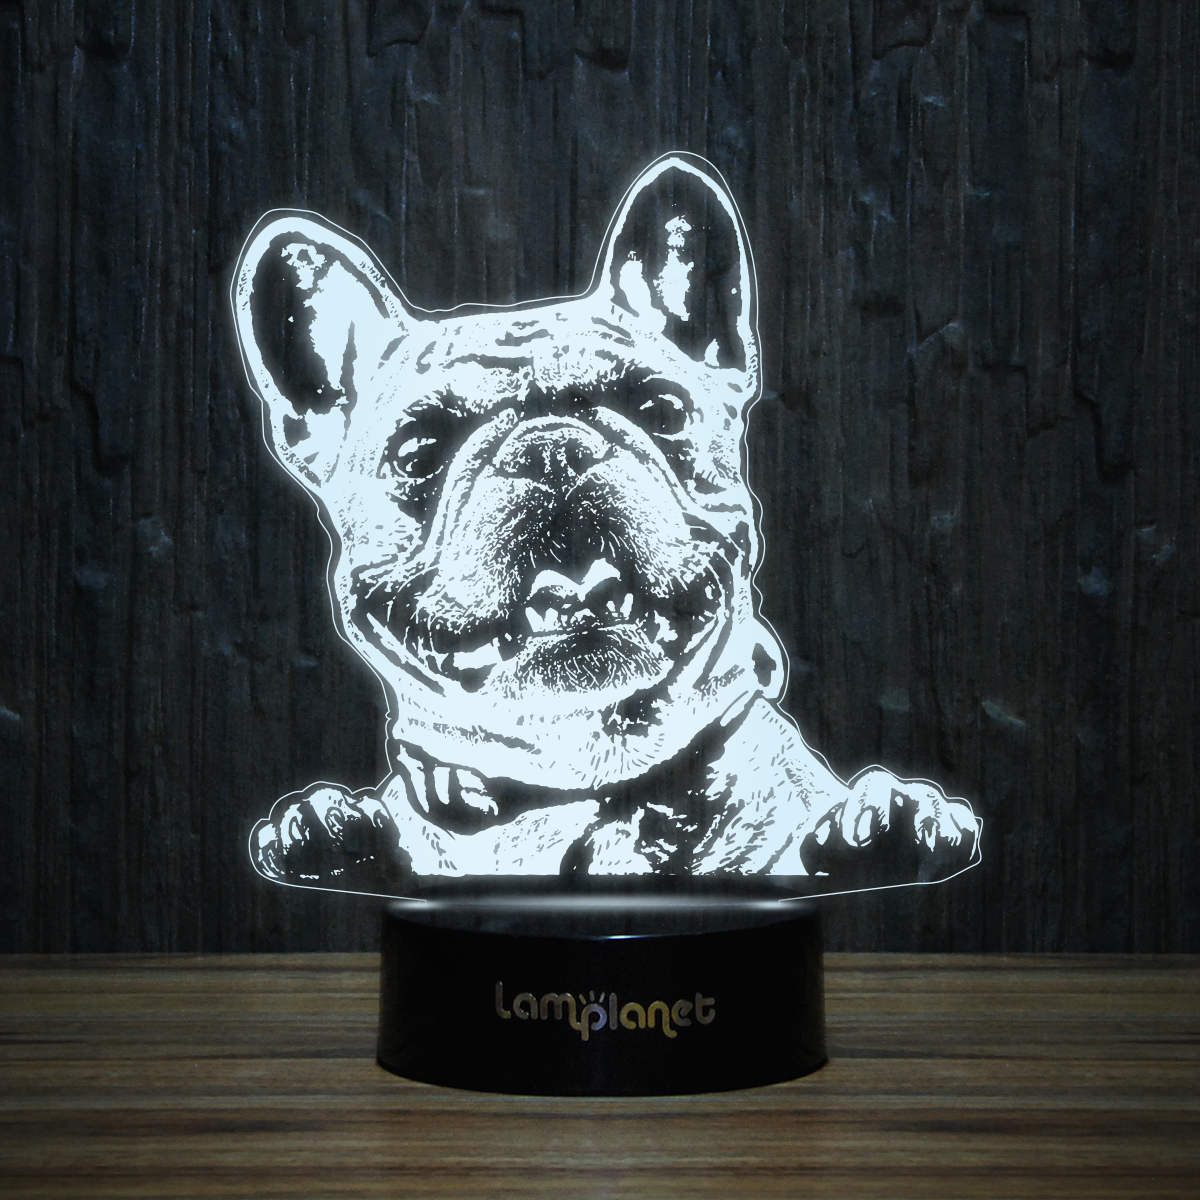 French Bulldog 3d Illusion Lamp 3d 97 Led Illusion Lamp Dachshund Accessories 3d Illusion Lamp 3d Illusions